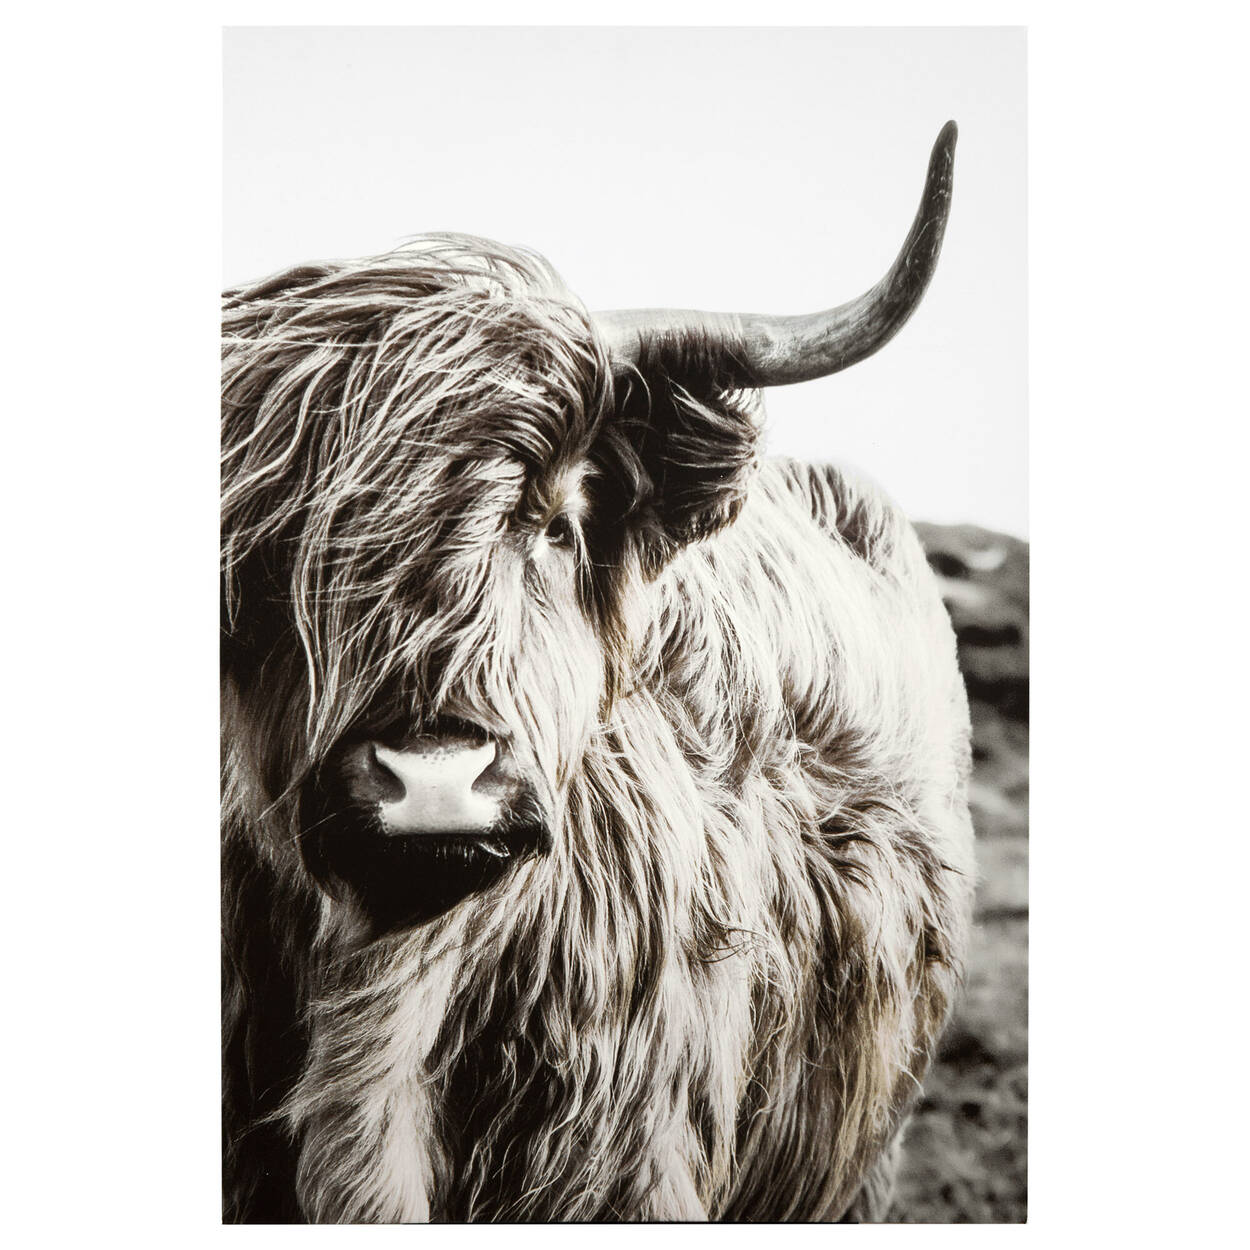 Friendly Highland Bull Printed Canvas